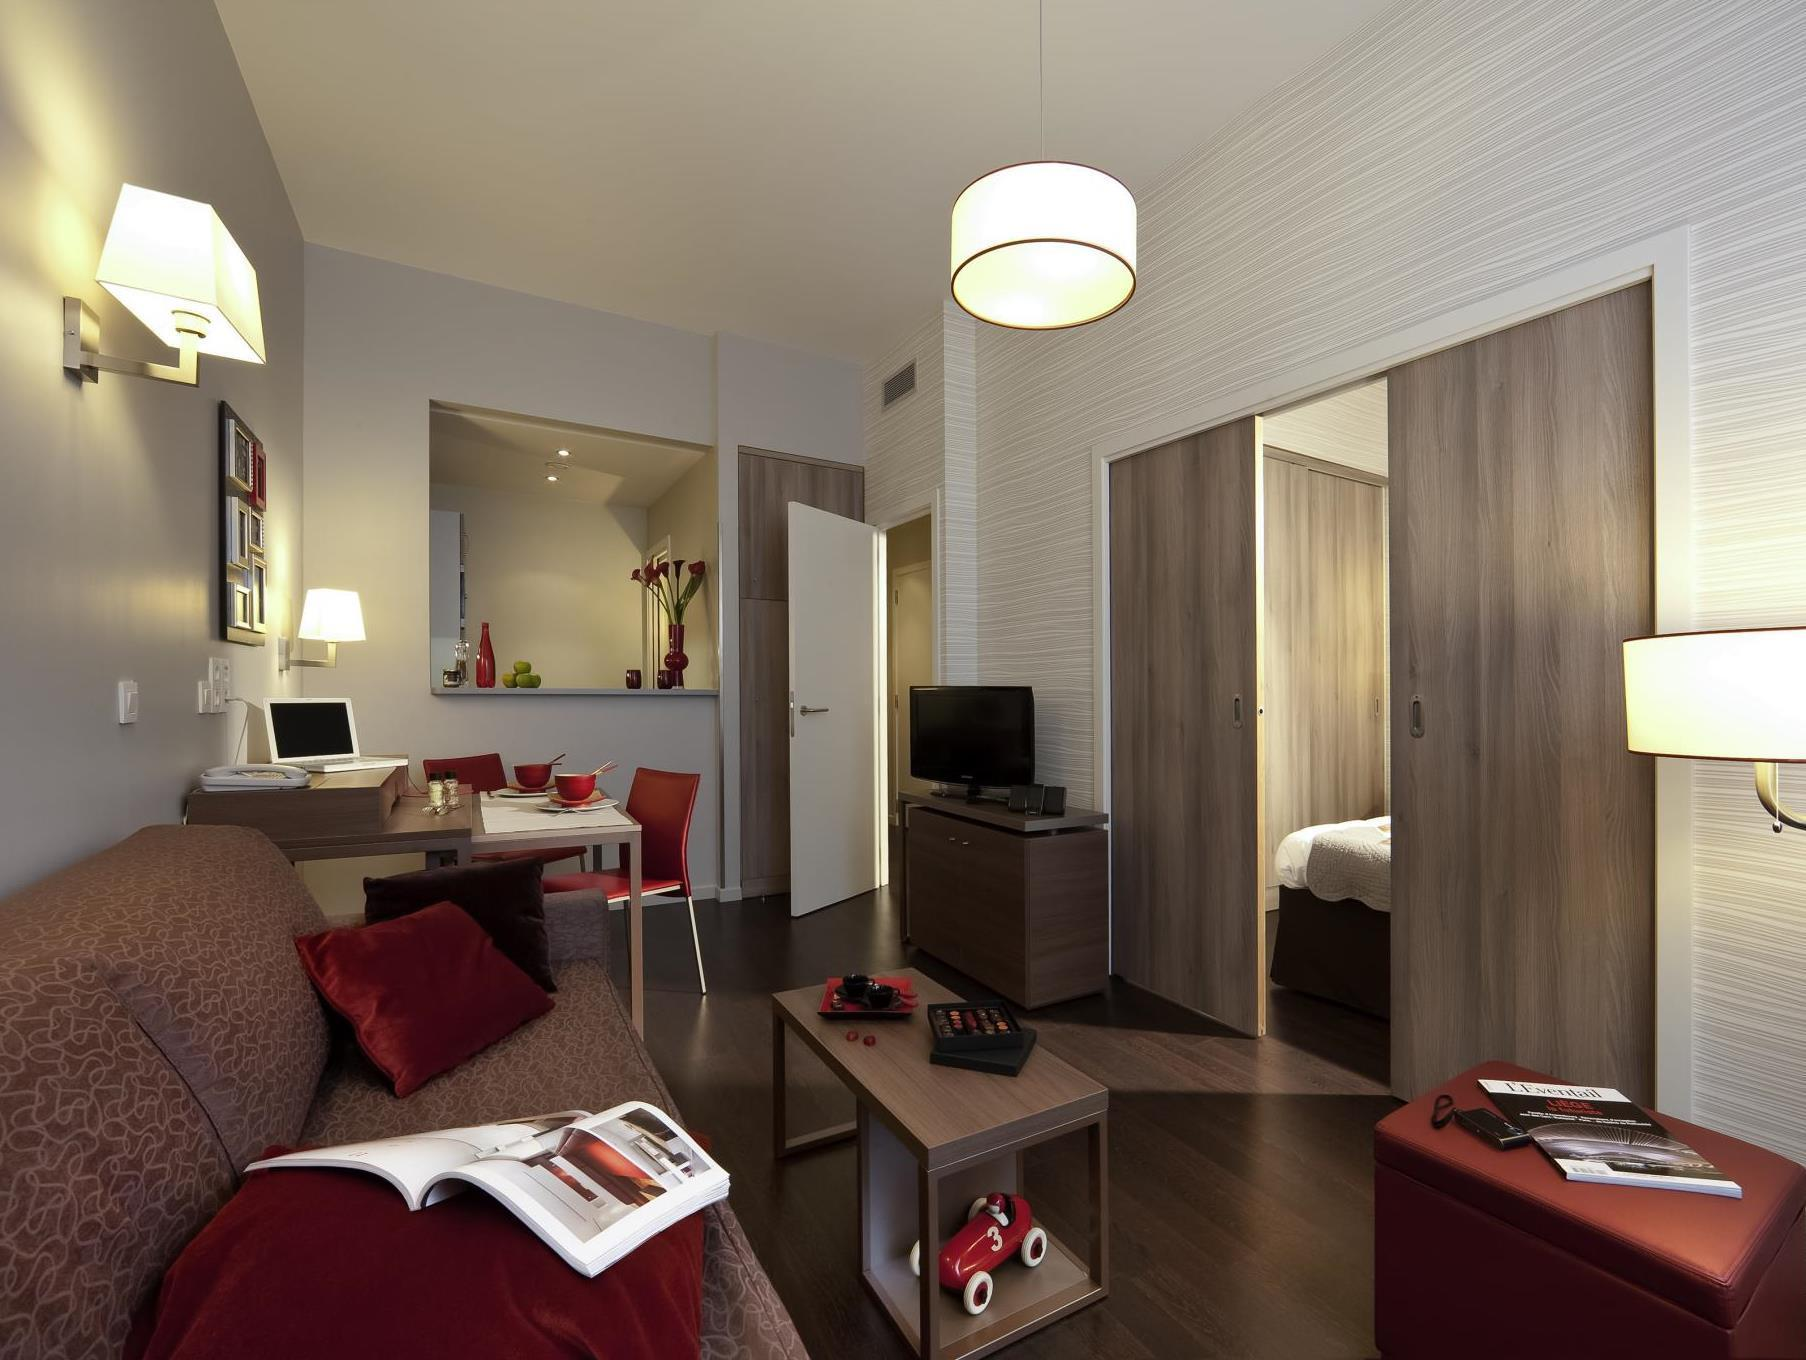 Meuble De Cuisine Pas Cher En Pin ~ Best Price On Adagio Brussels Grand Place In Brussels Reviews